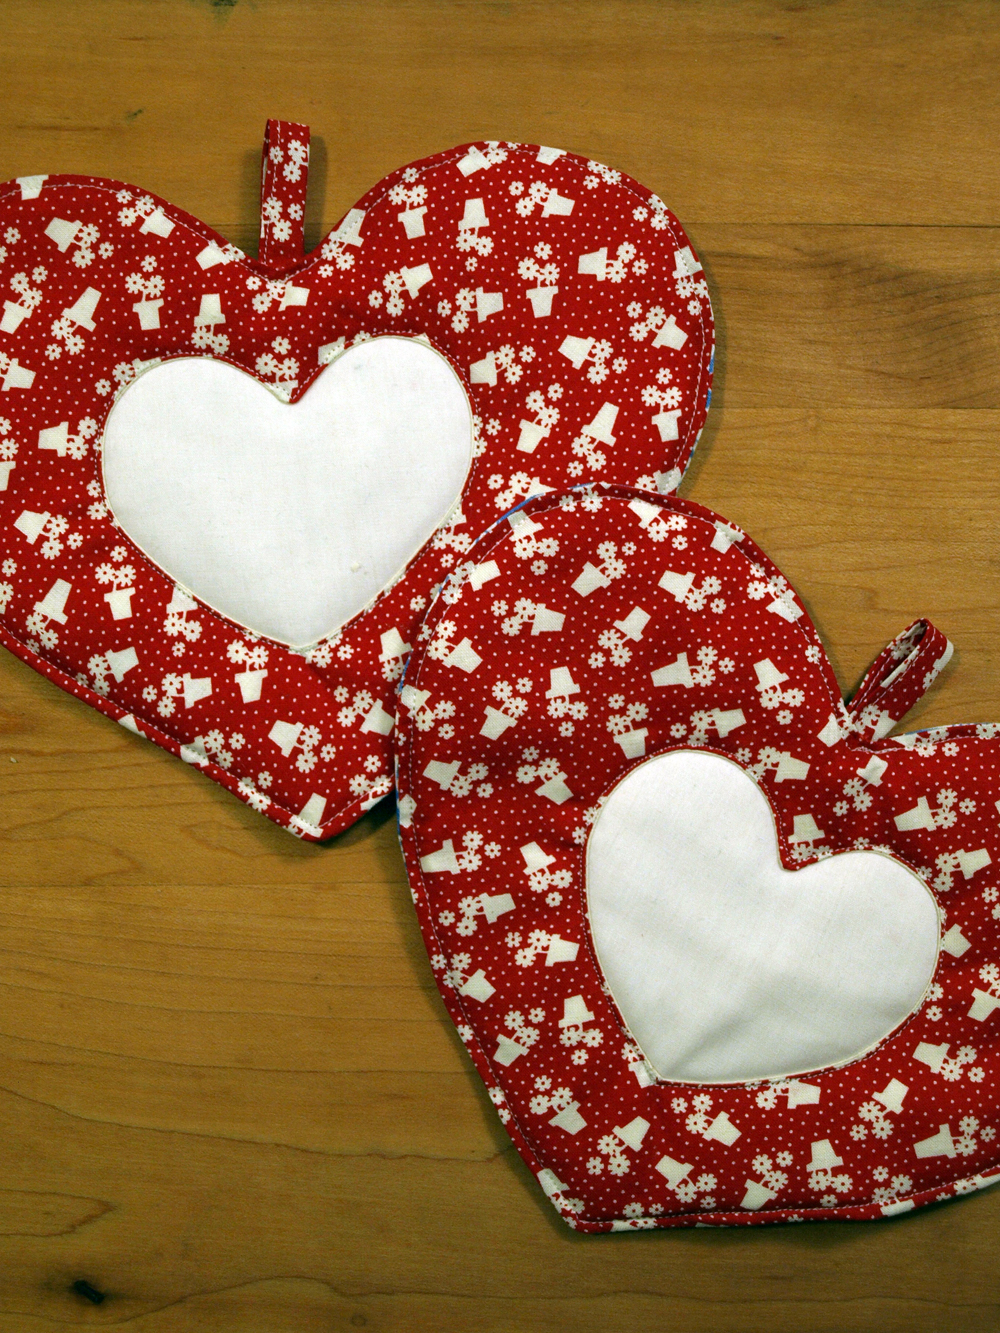 Another set of heart shaped pot holders: wait till you see the fabric on the backside!